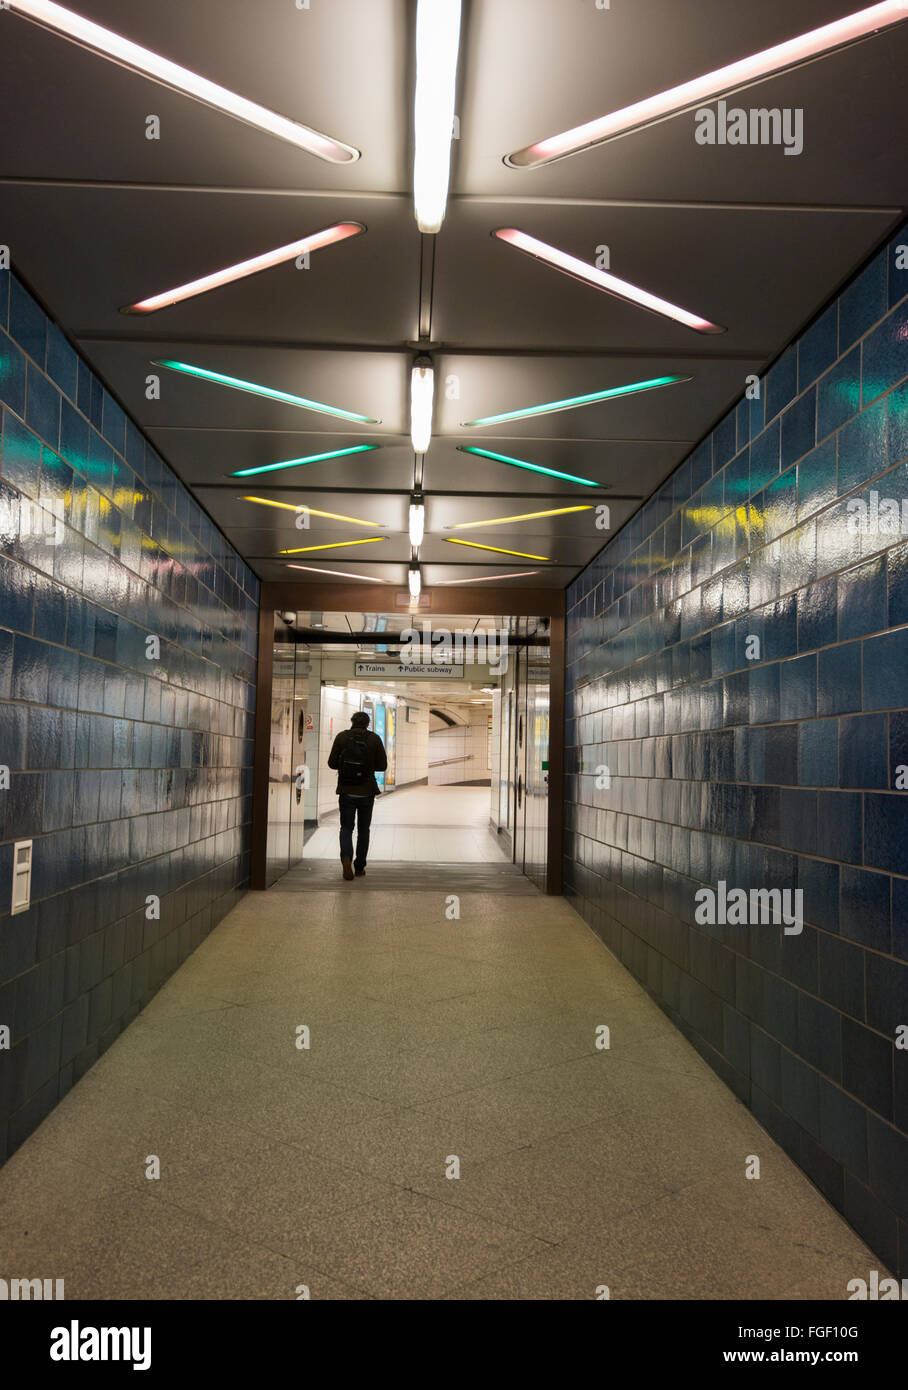 Subway tunnel at No 1 The Poultry in the Financial District London, England UK - Stock Image